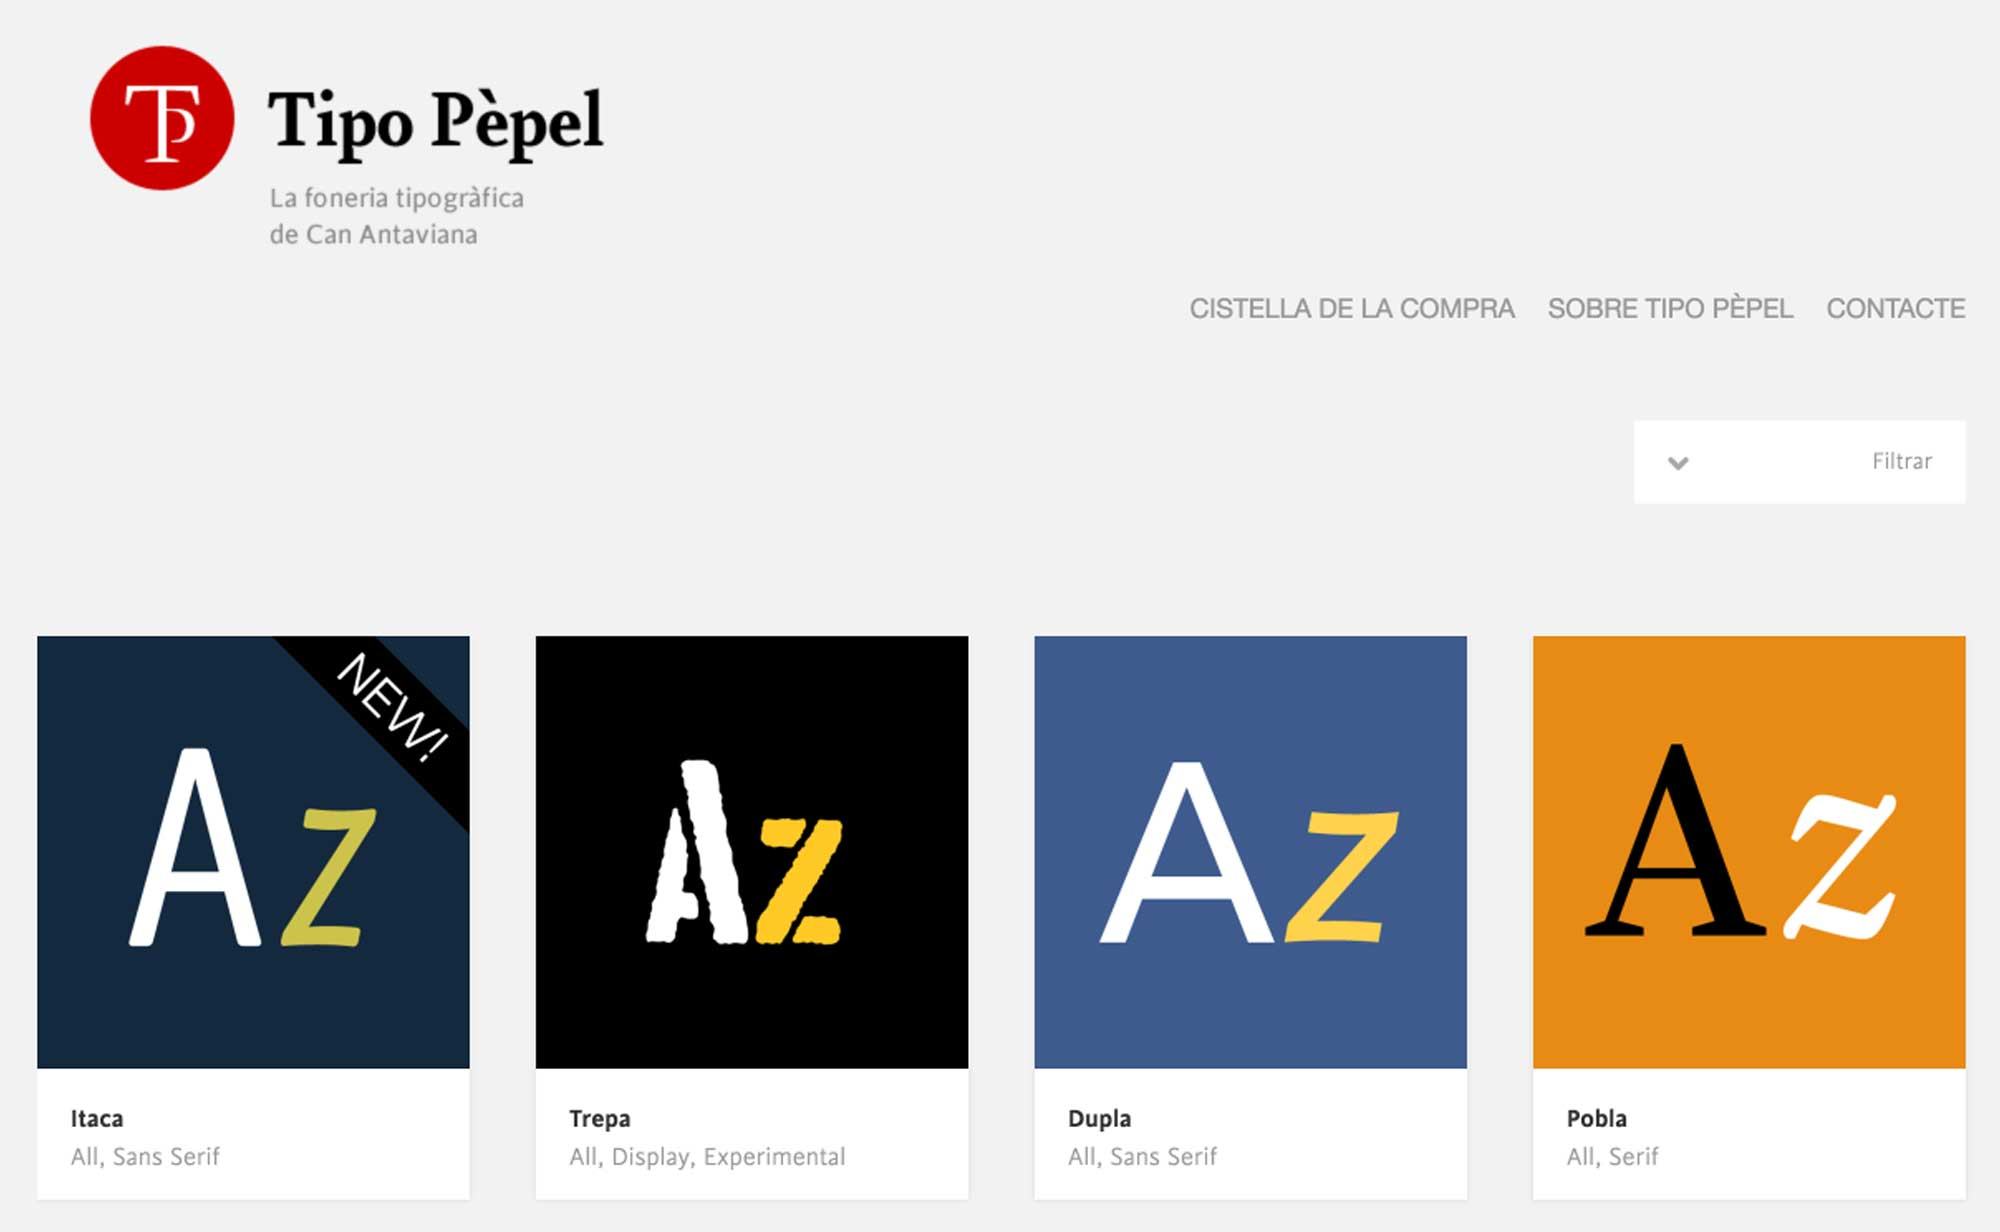 fundiciones-tipograficas-digitales-tipopepel